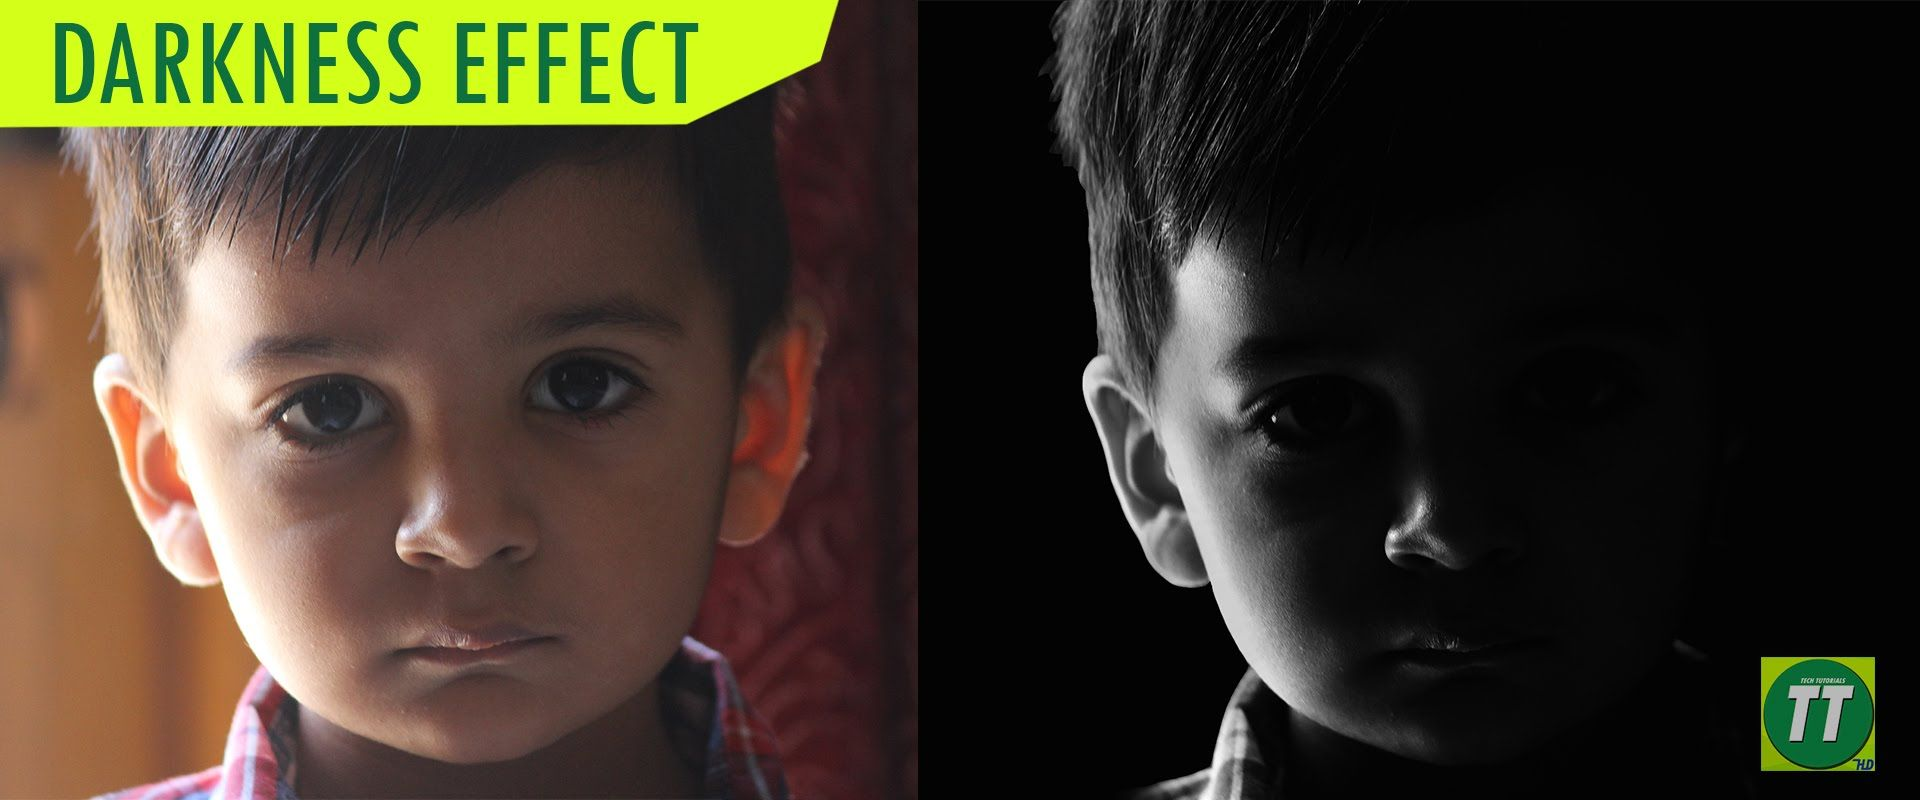 Photoshop tutorial darkness effect black white photo tech there we go we are delighted to present you another photoshop tutorial this time we have made a video on how to create a dark studio effect in photoshop baditri Gallery